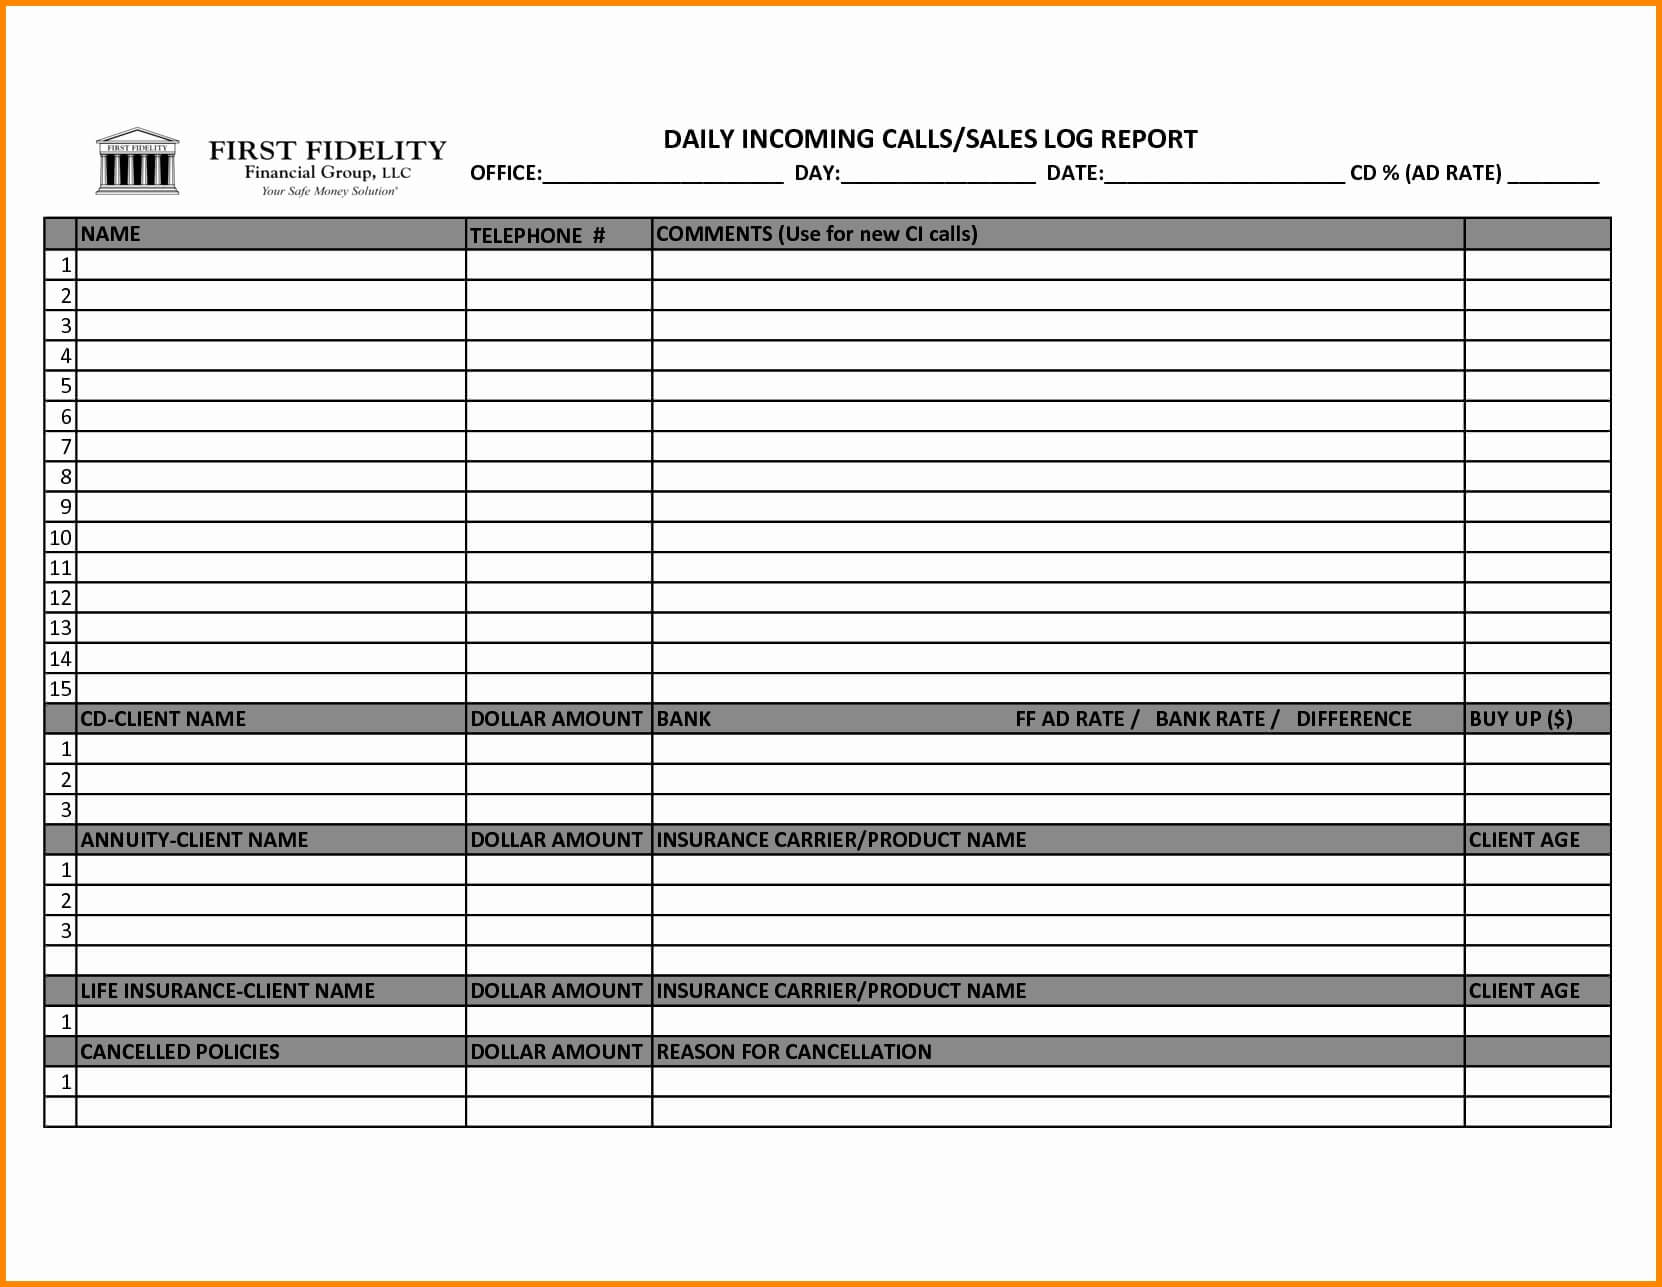 007 Sales Calls Report Template Ideas Sample Call Reports Or With Regard To Sales Call Report Template Free